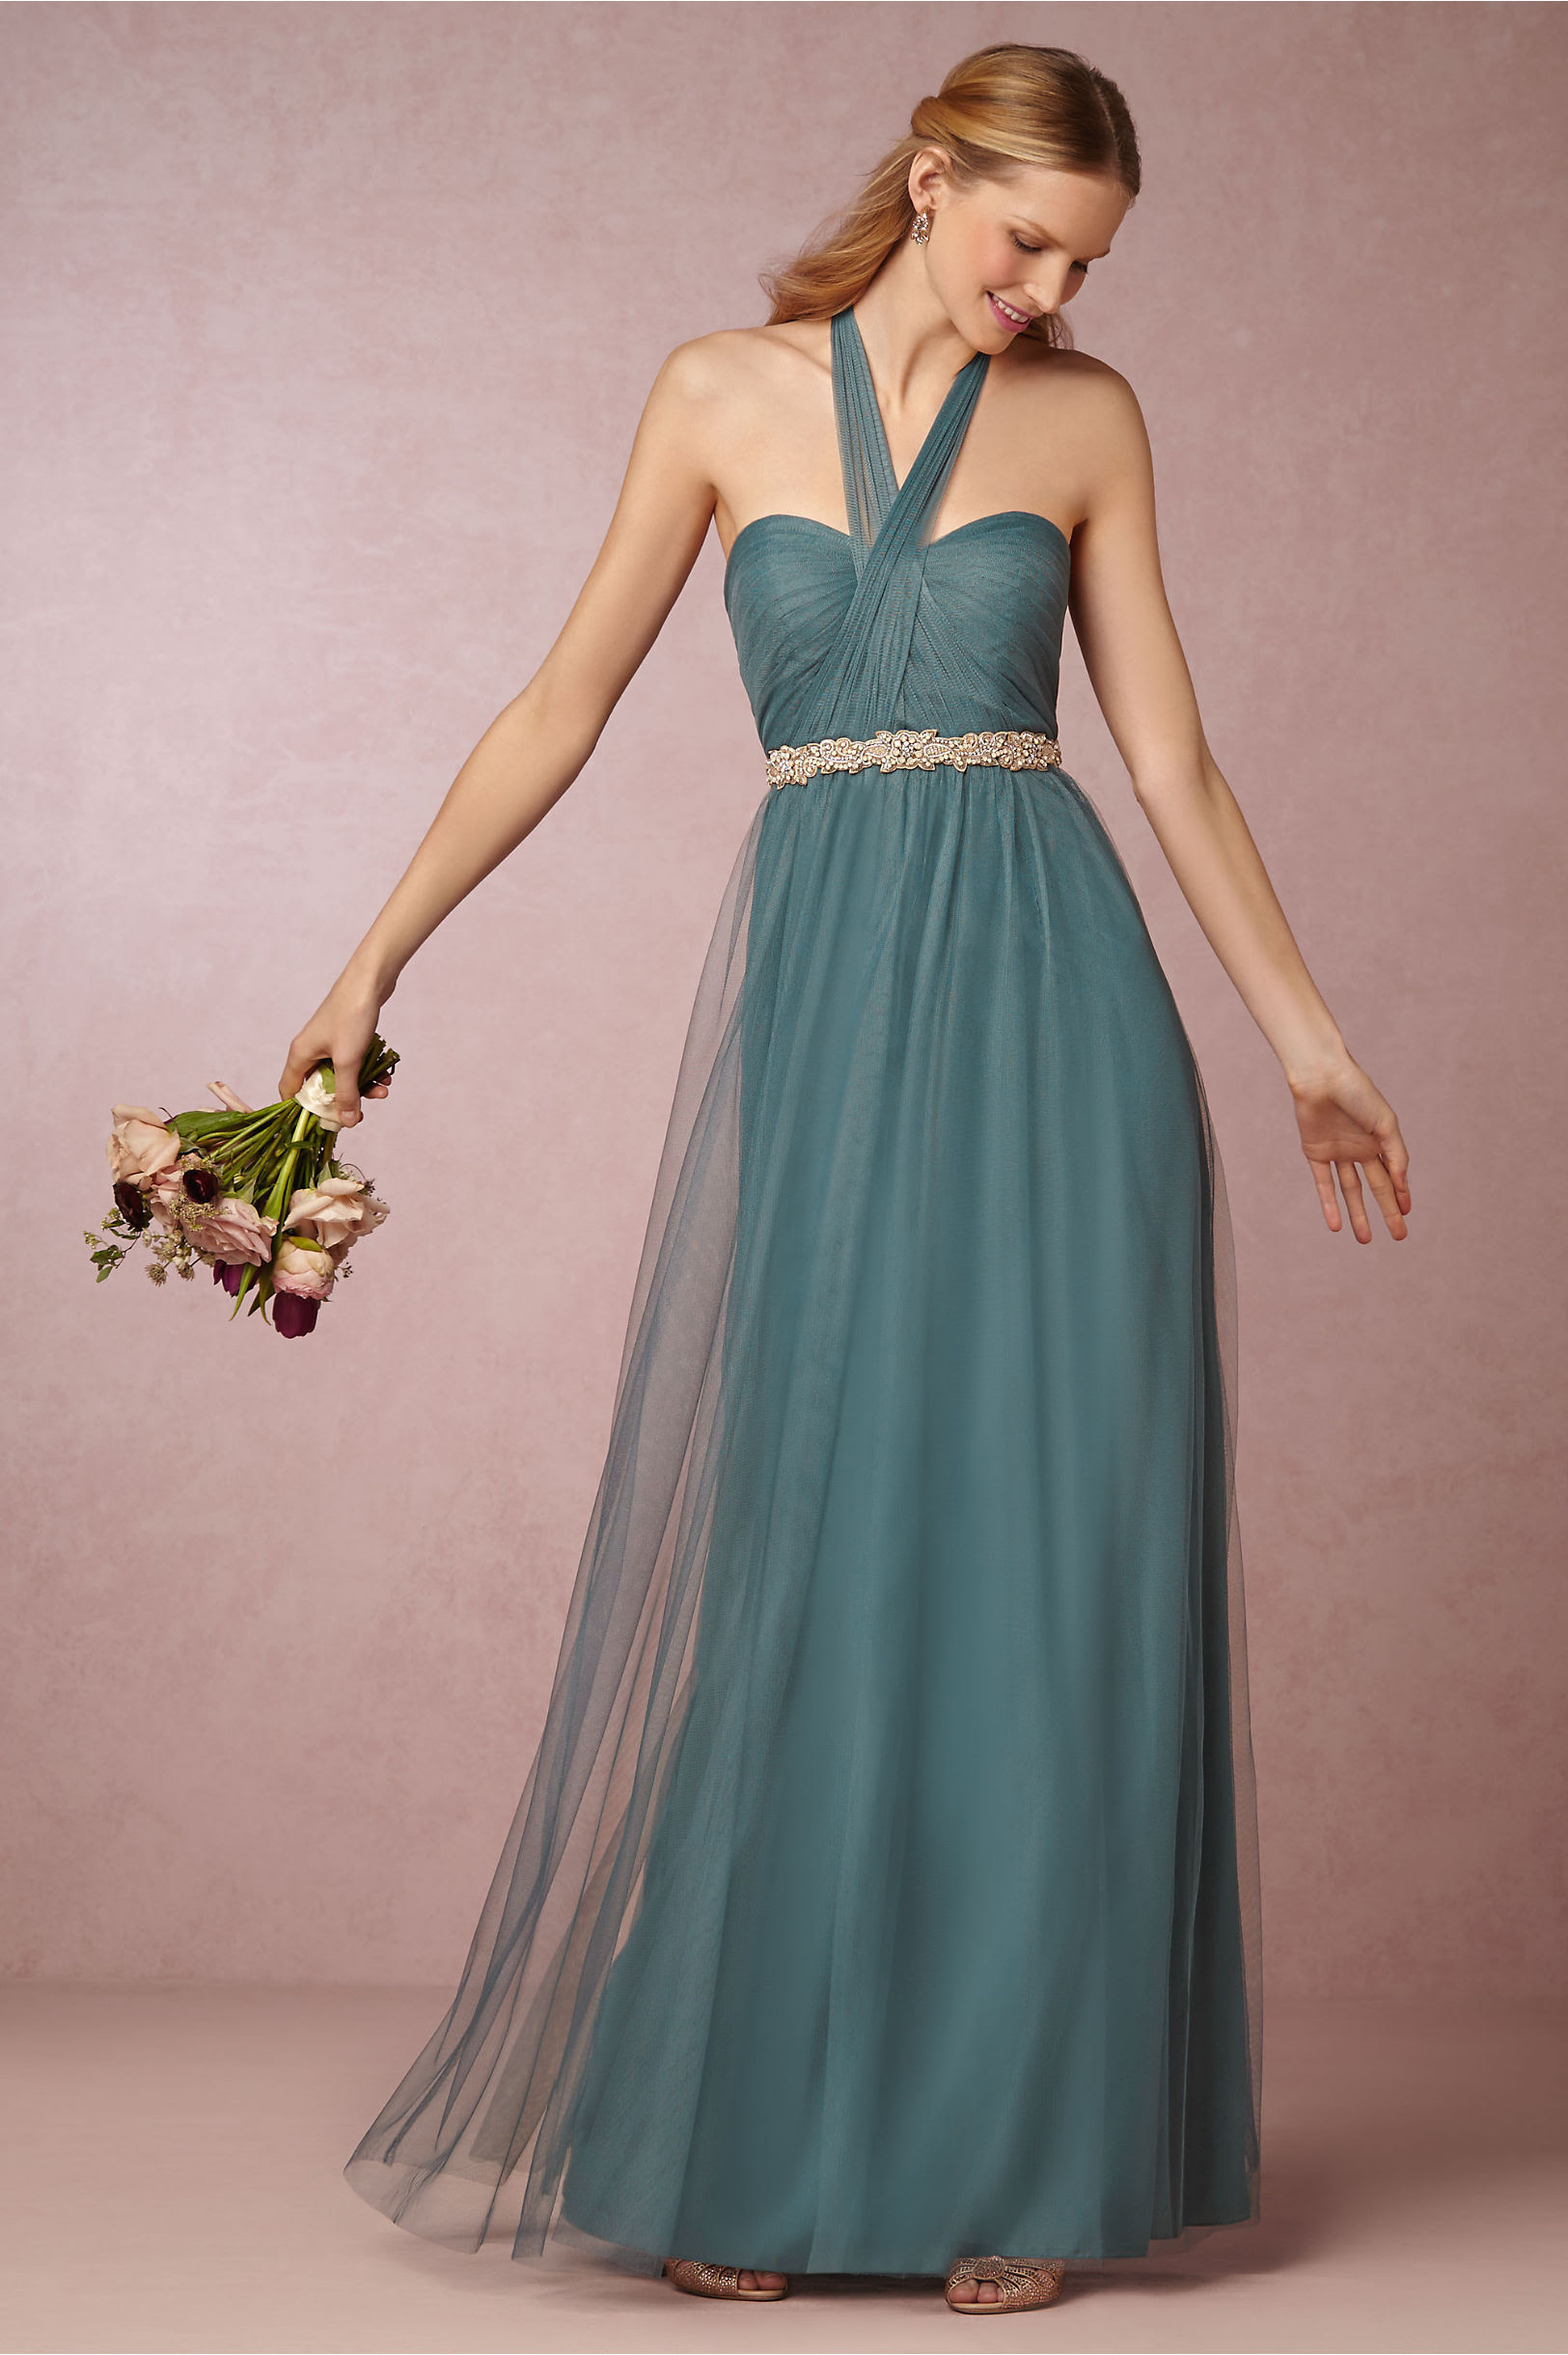 Hater Neck Emerald Green Tulle  Pleated Vintage Bridesmaid Dress with Crystal Band _3